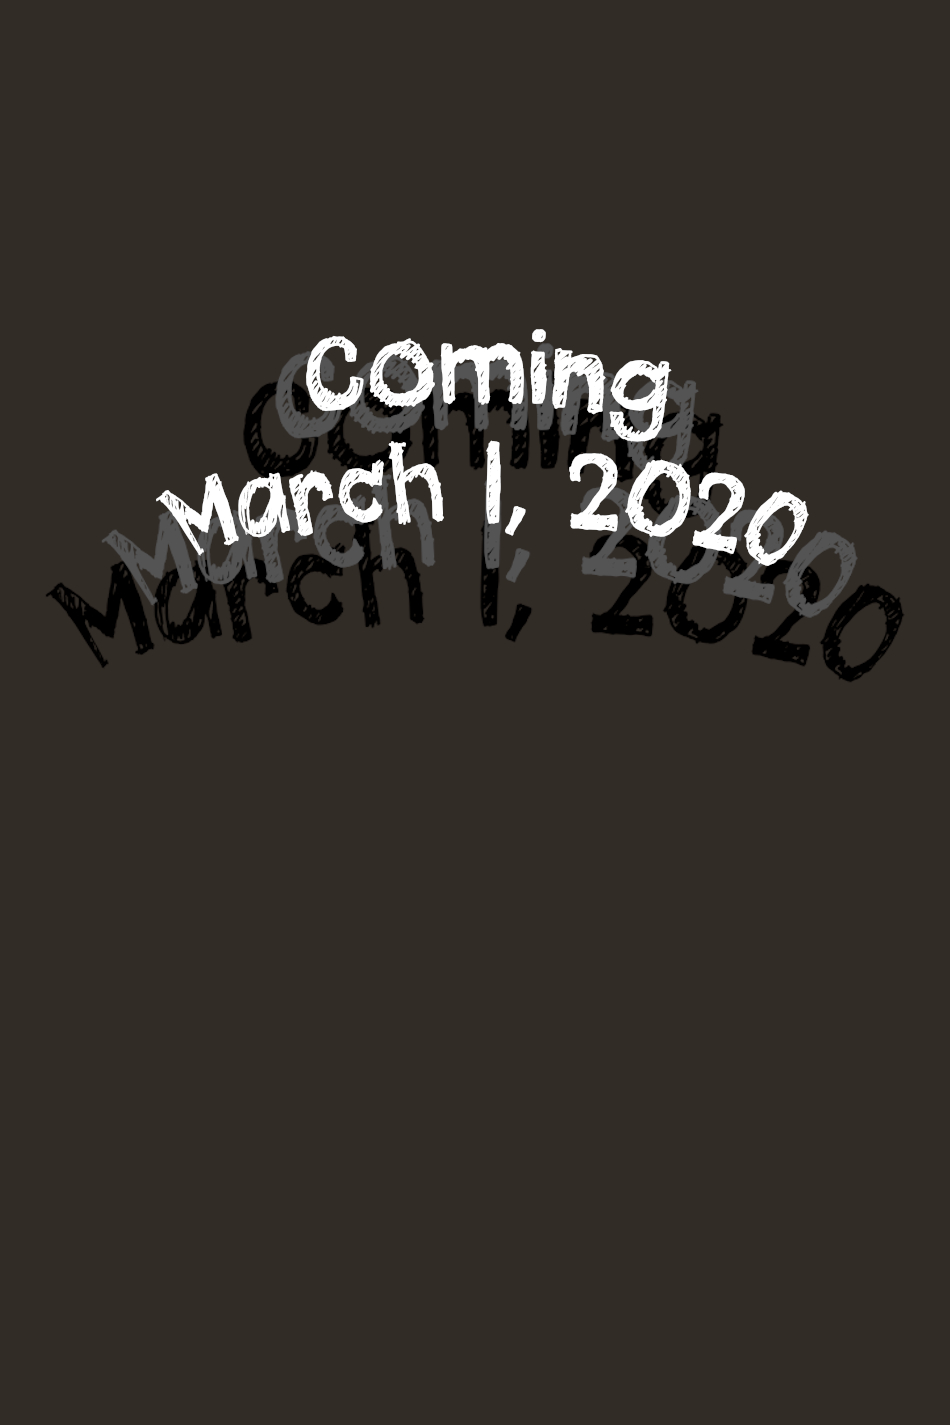 Coming March 1, 2020